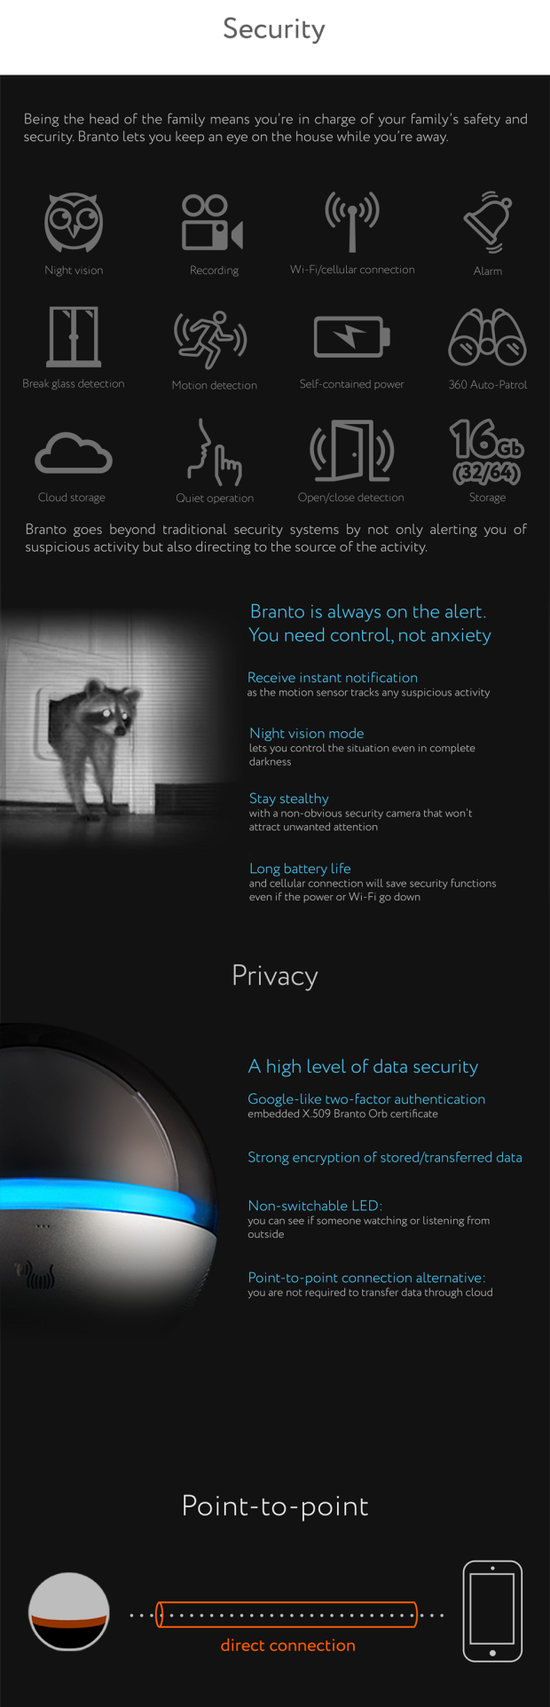 Branto_security.png